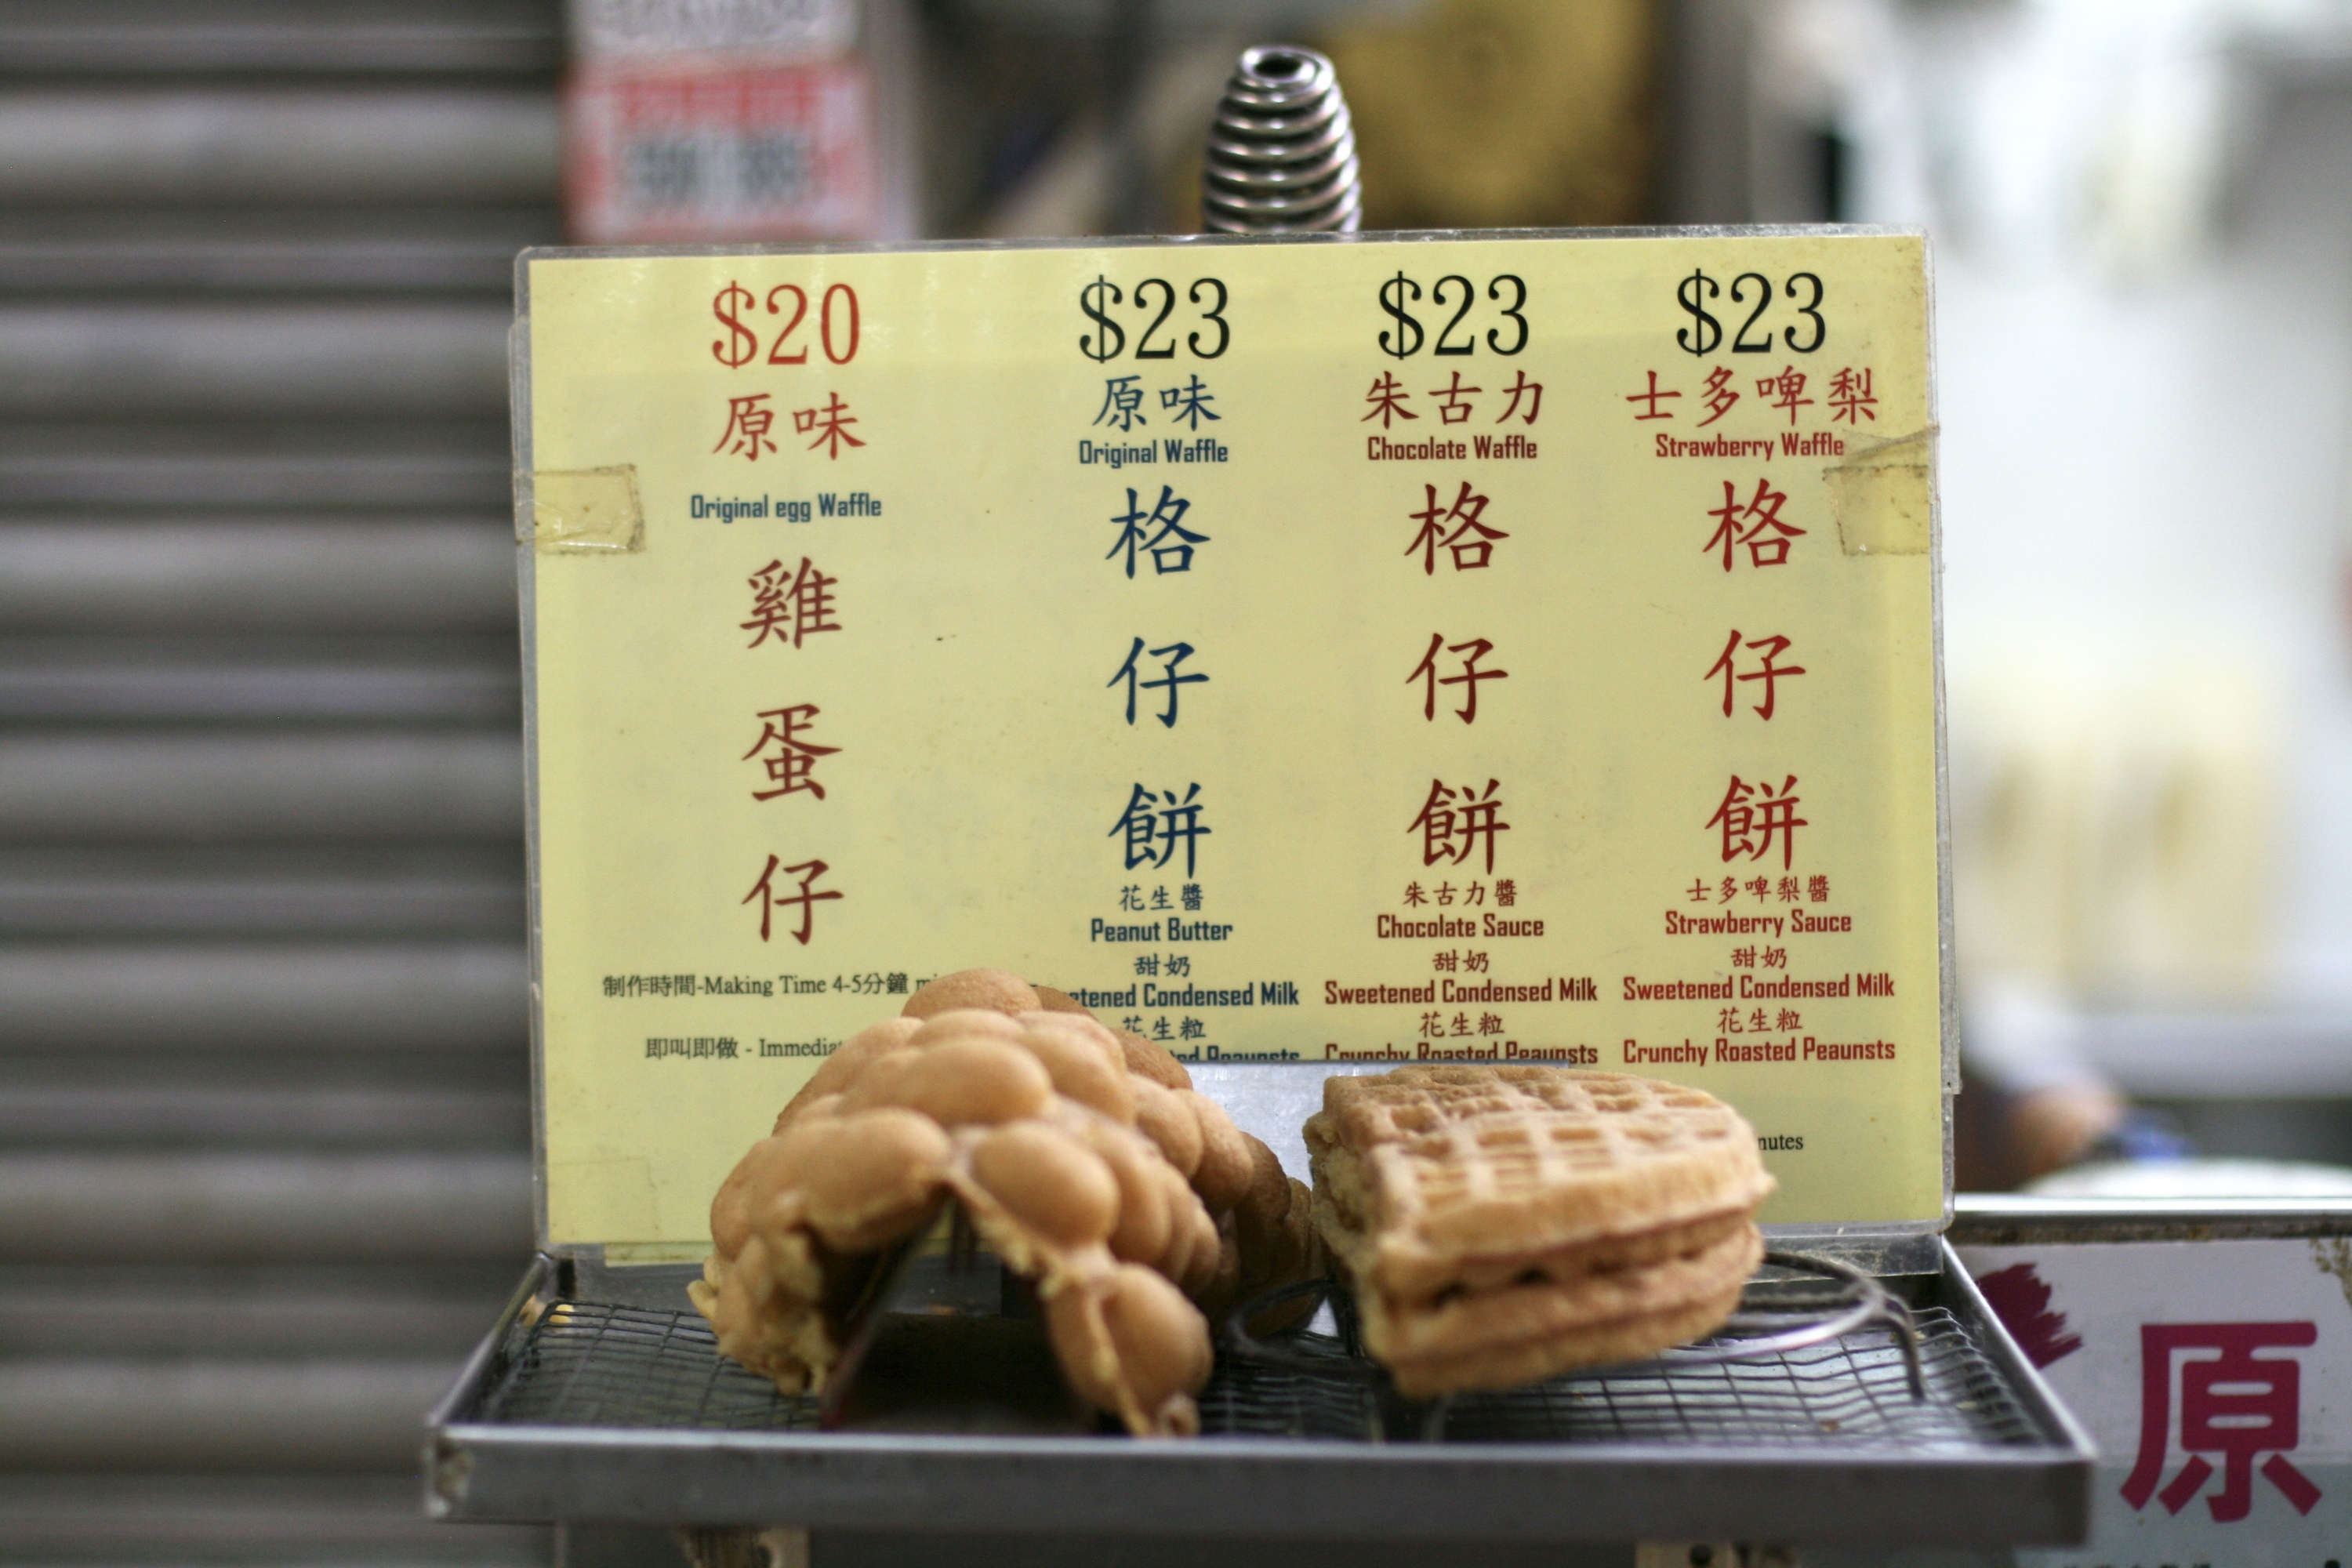 Hung Kee Top Quality Egg Waffles